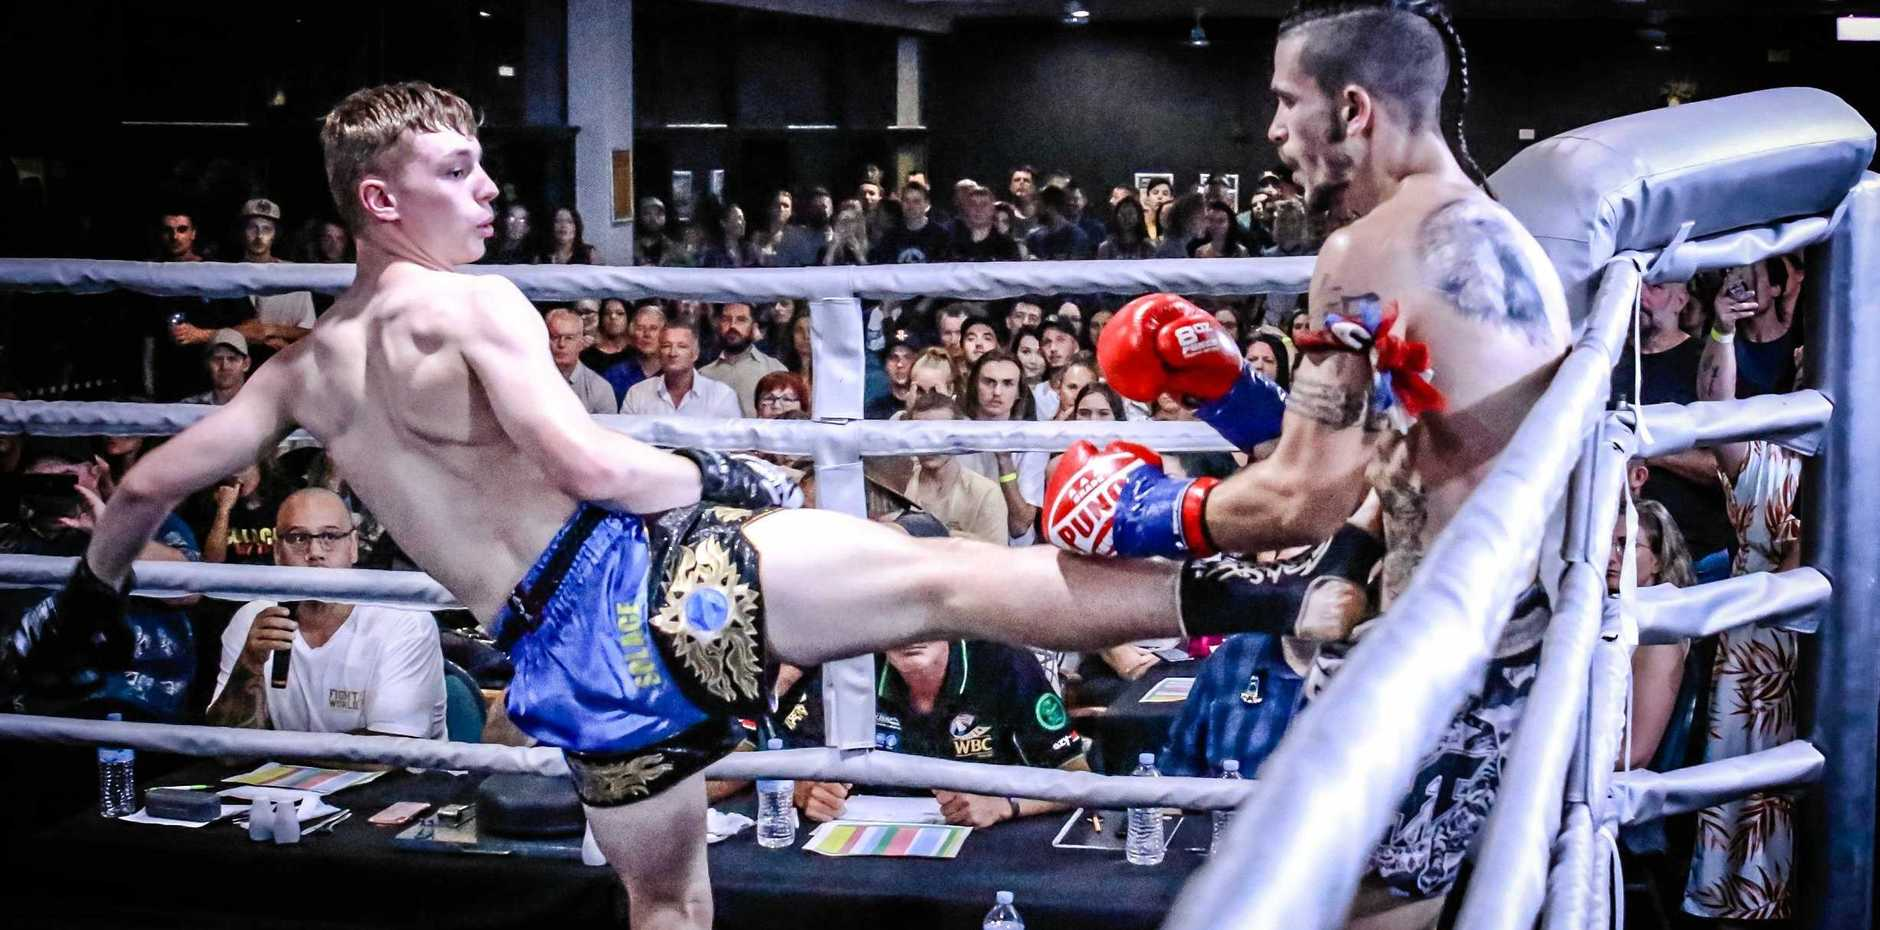 KICKING GOALS: Solace Muay Thai fighter John Slade (left) during a recent fight at Kirra Sports Club on the Gold Coast.